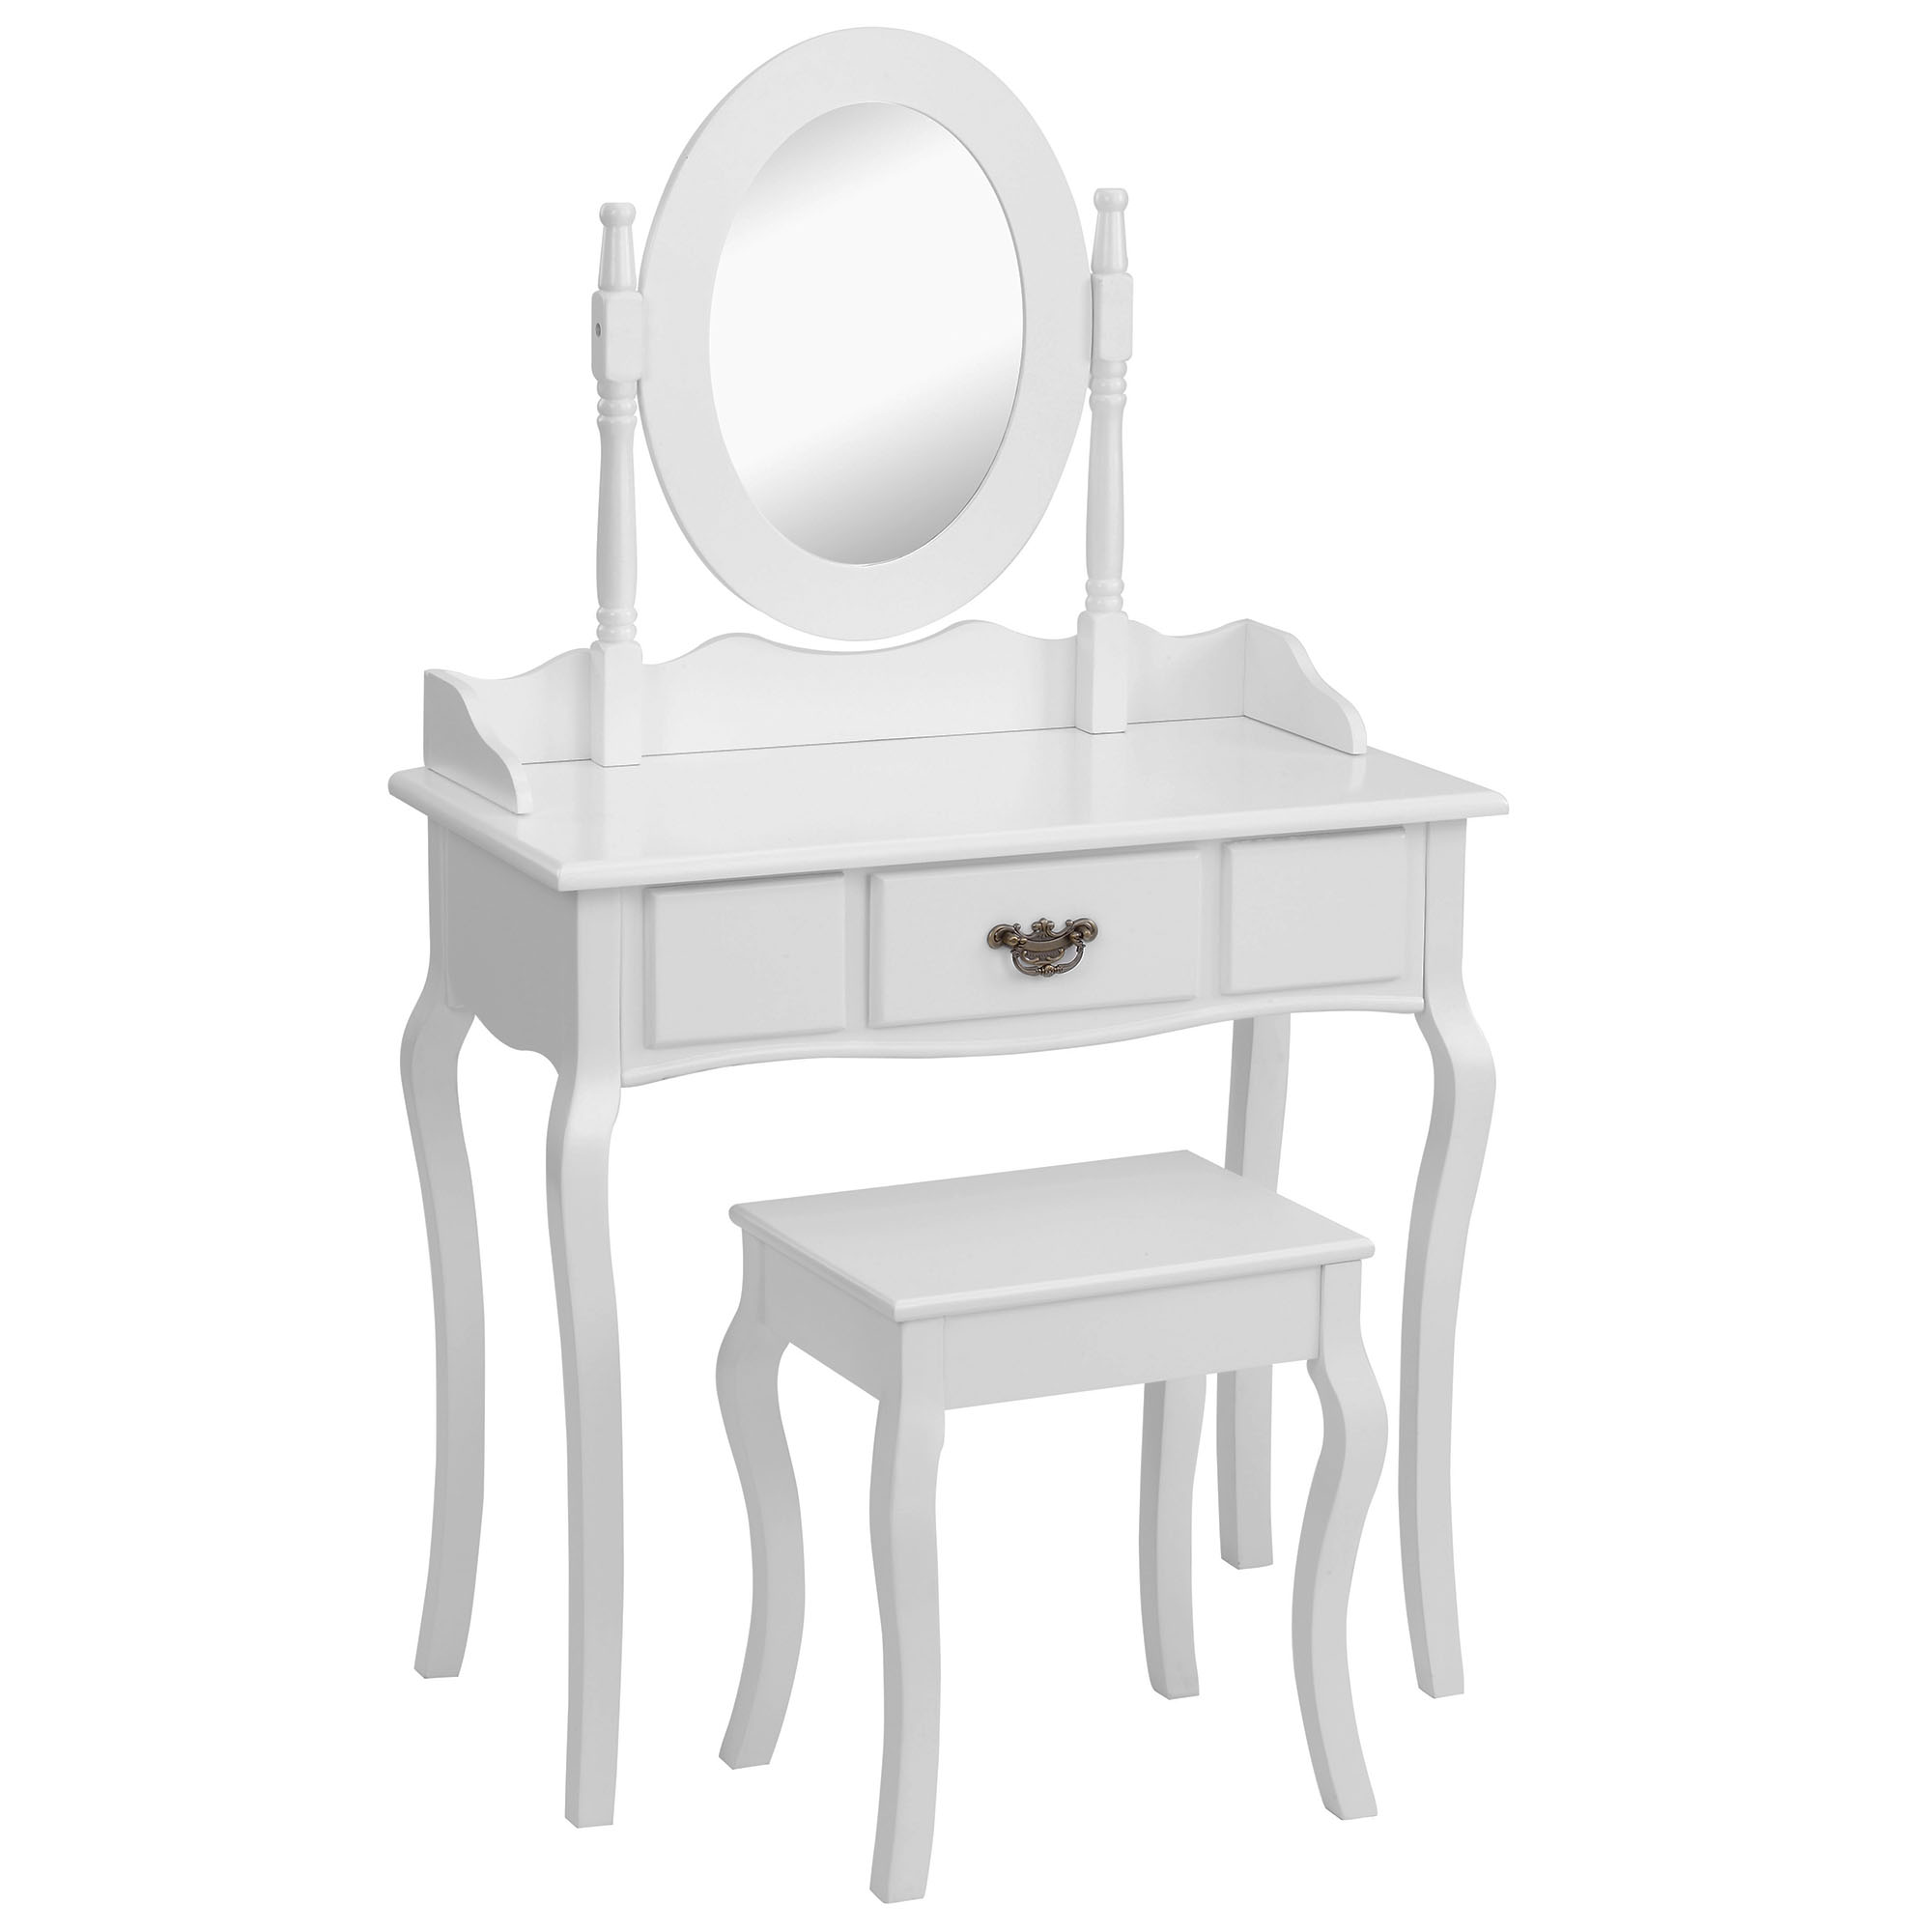 Beautify White Dressing Table Bedroom Makeup Vanity Desk